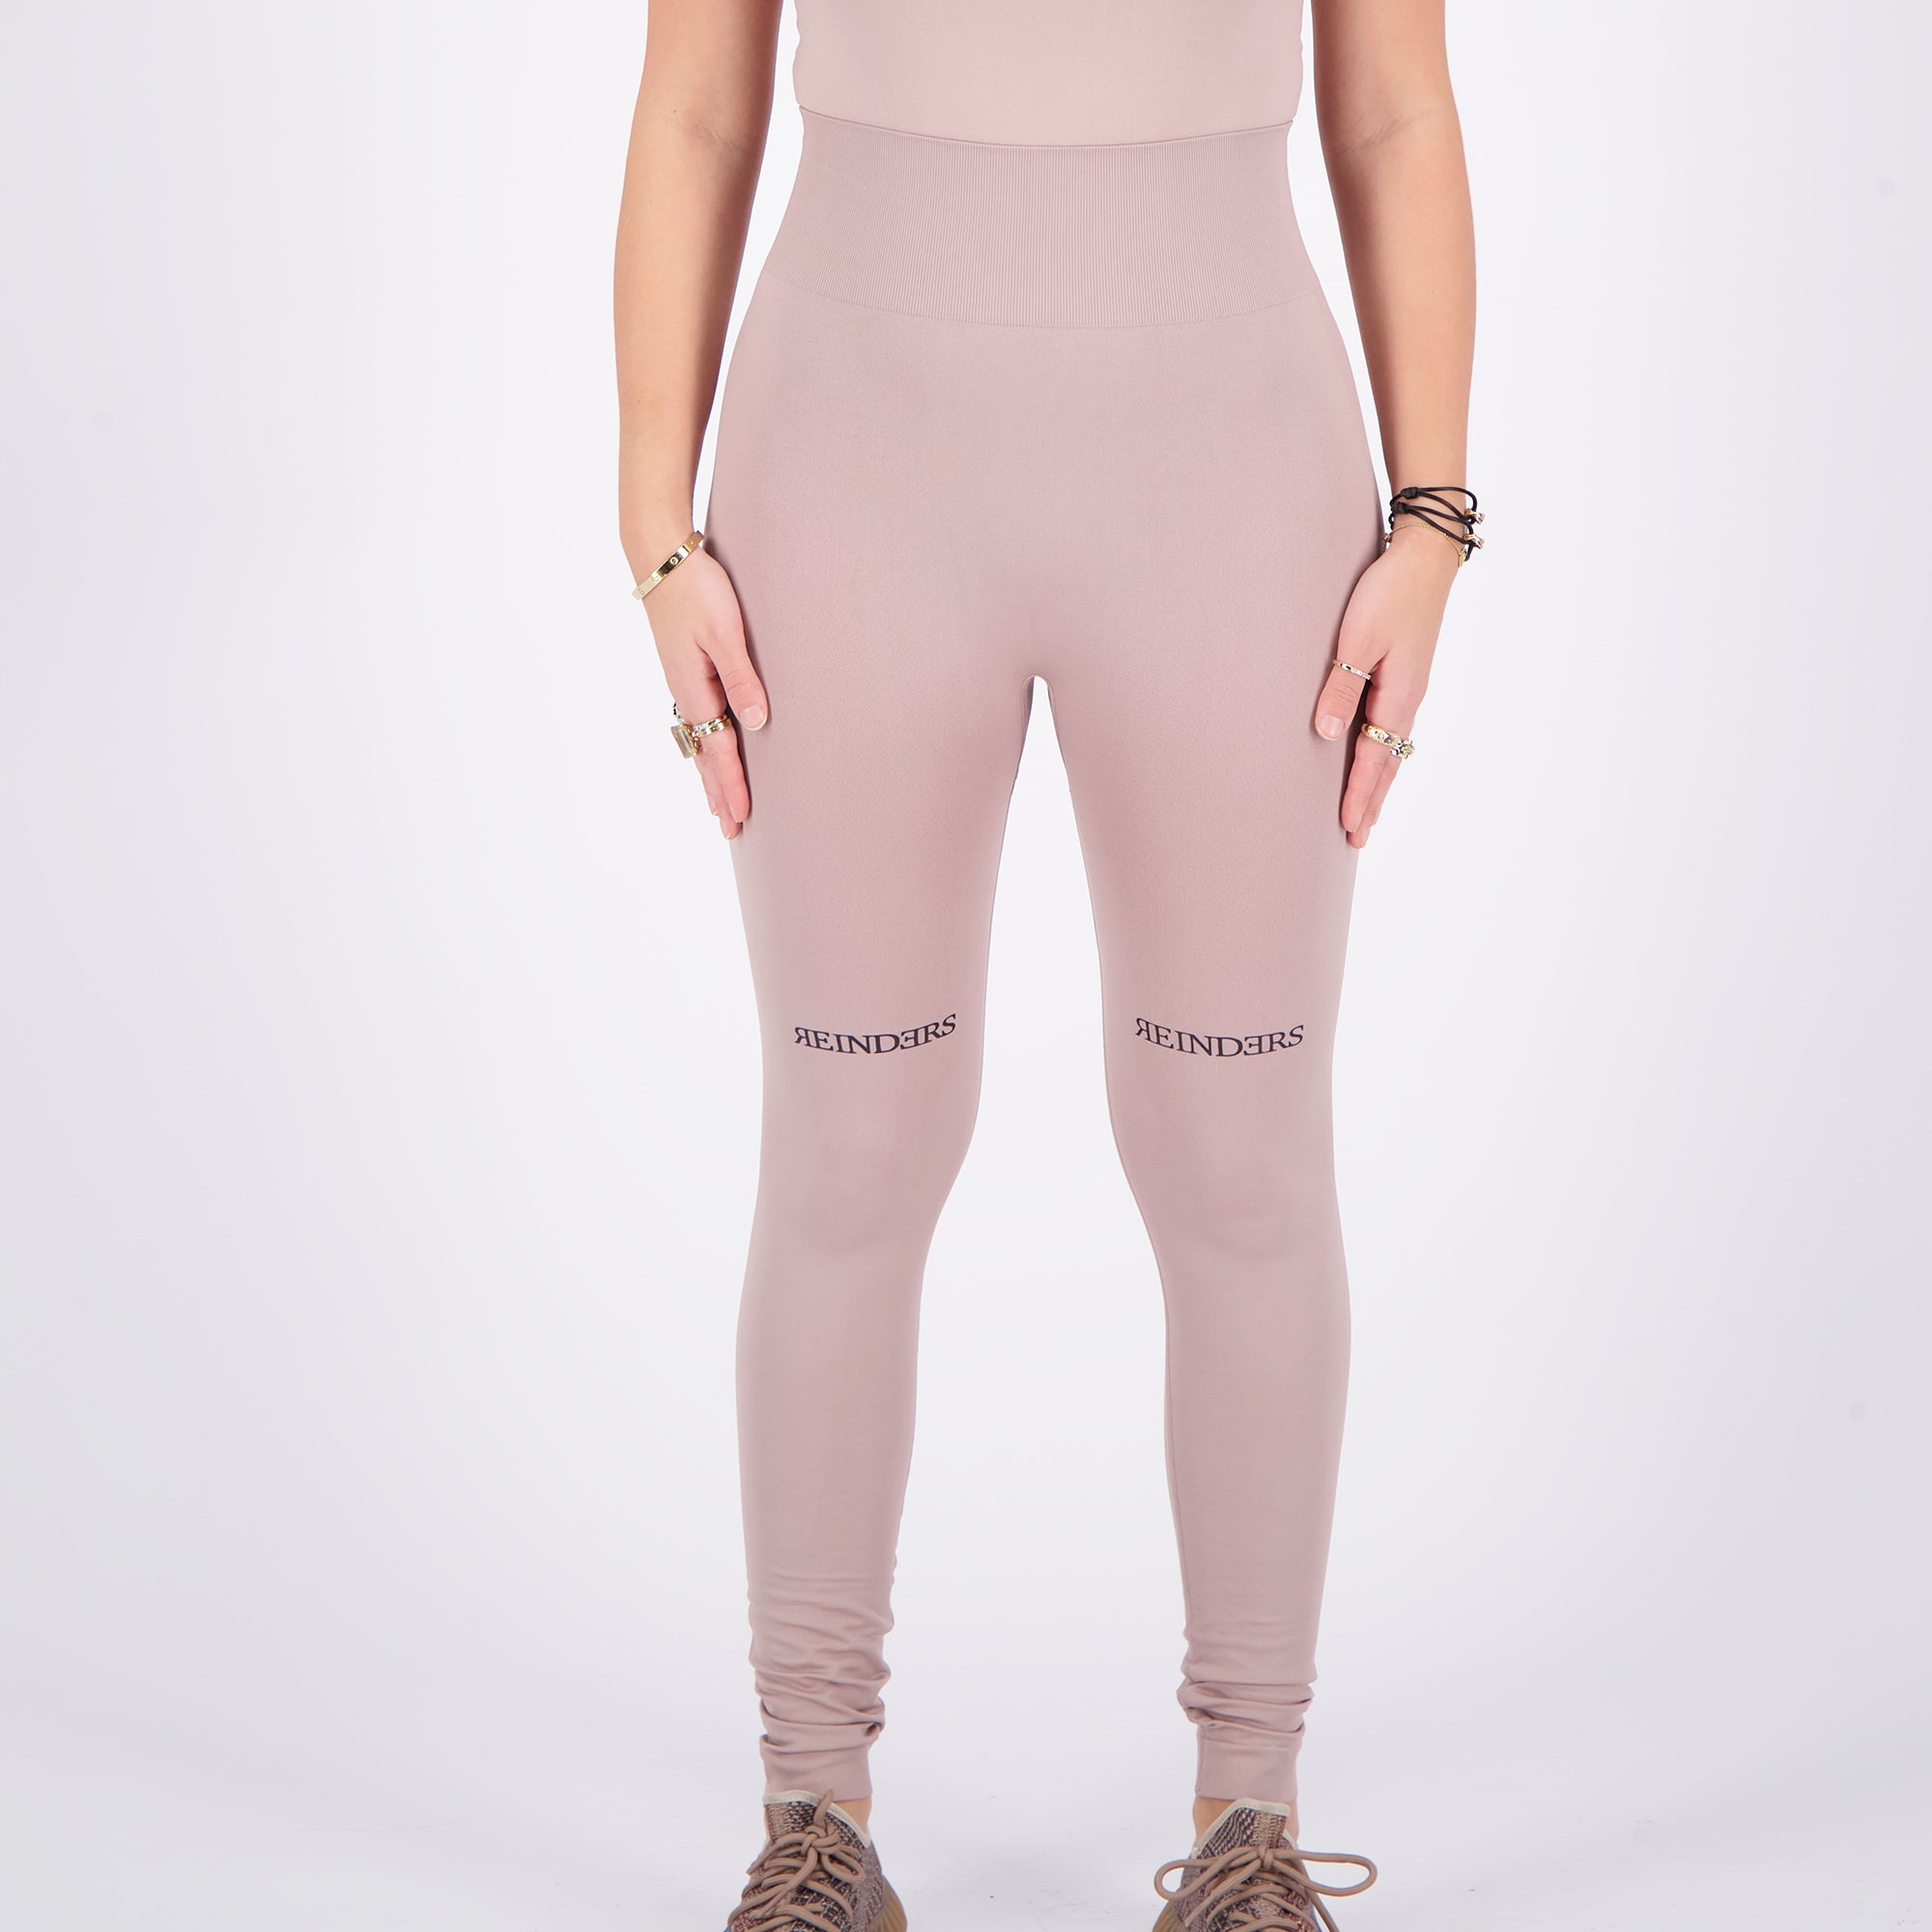 Reinders Sport Legging Long